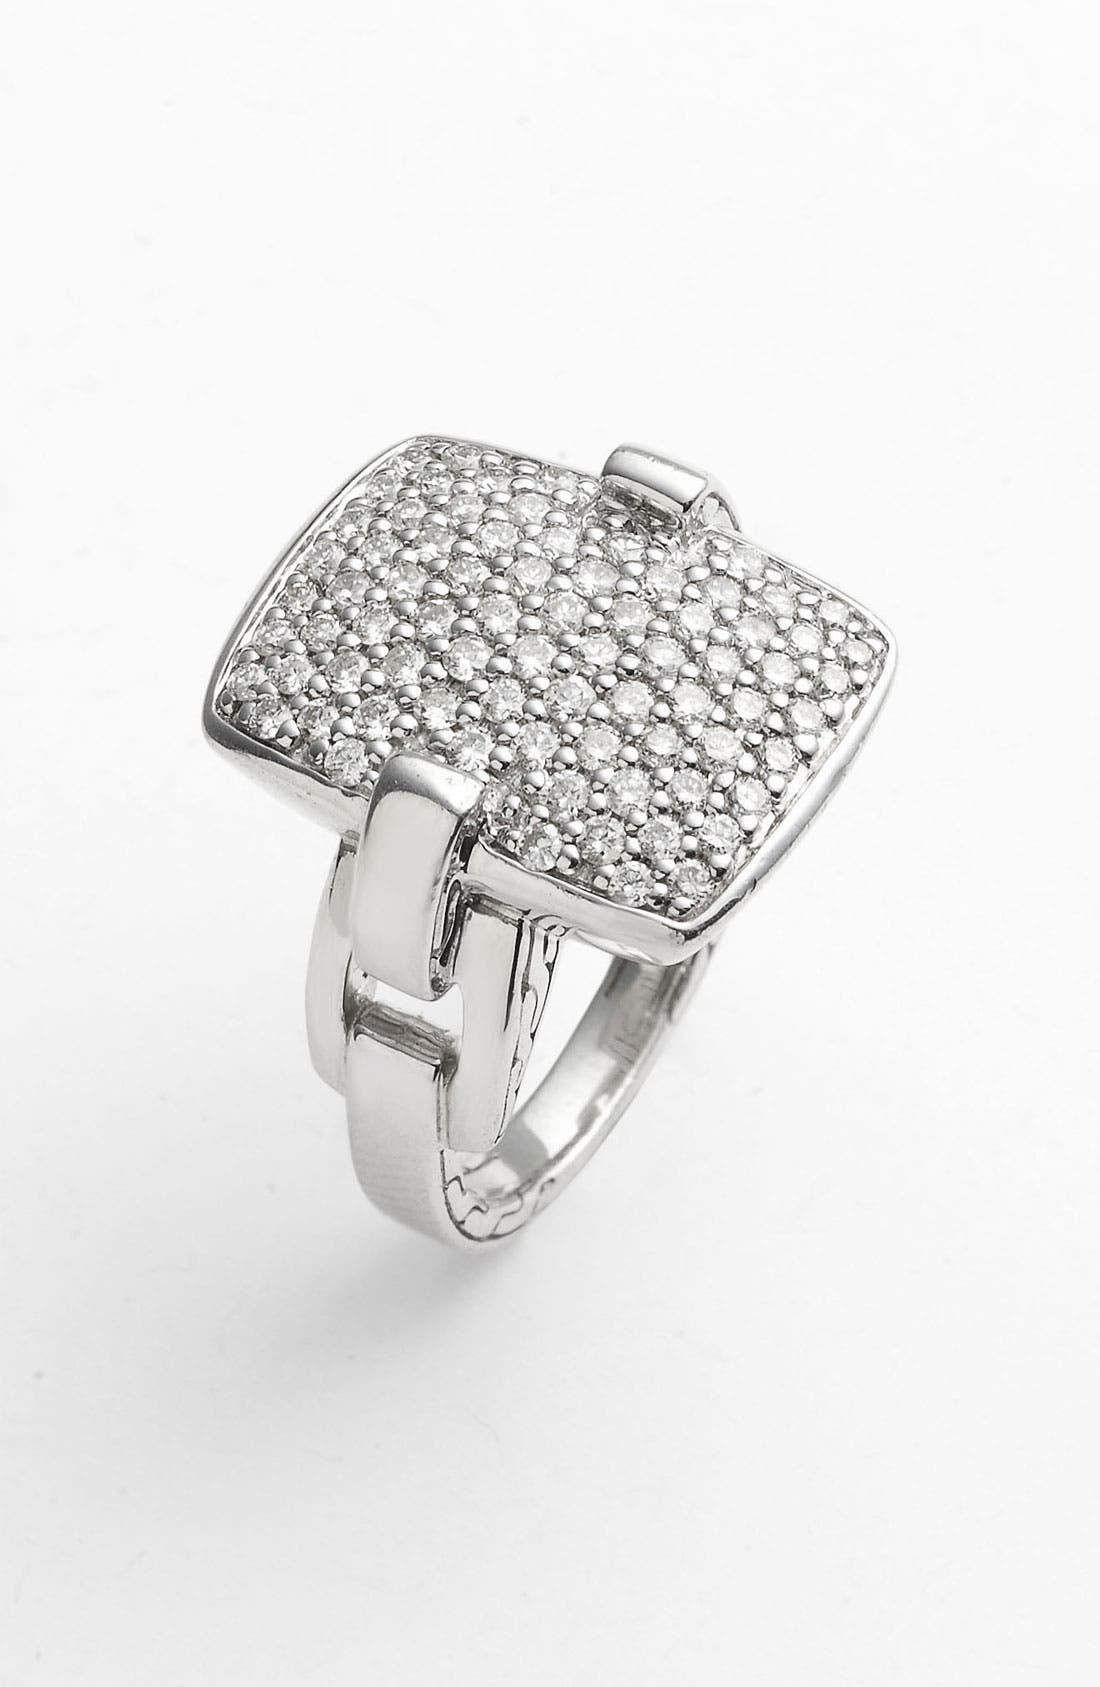 Main Image - John Hardy 'Classic Chain' Rectangular Diamond Pavé Ring